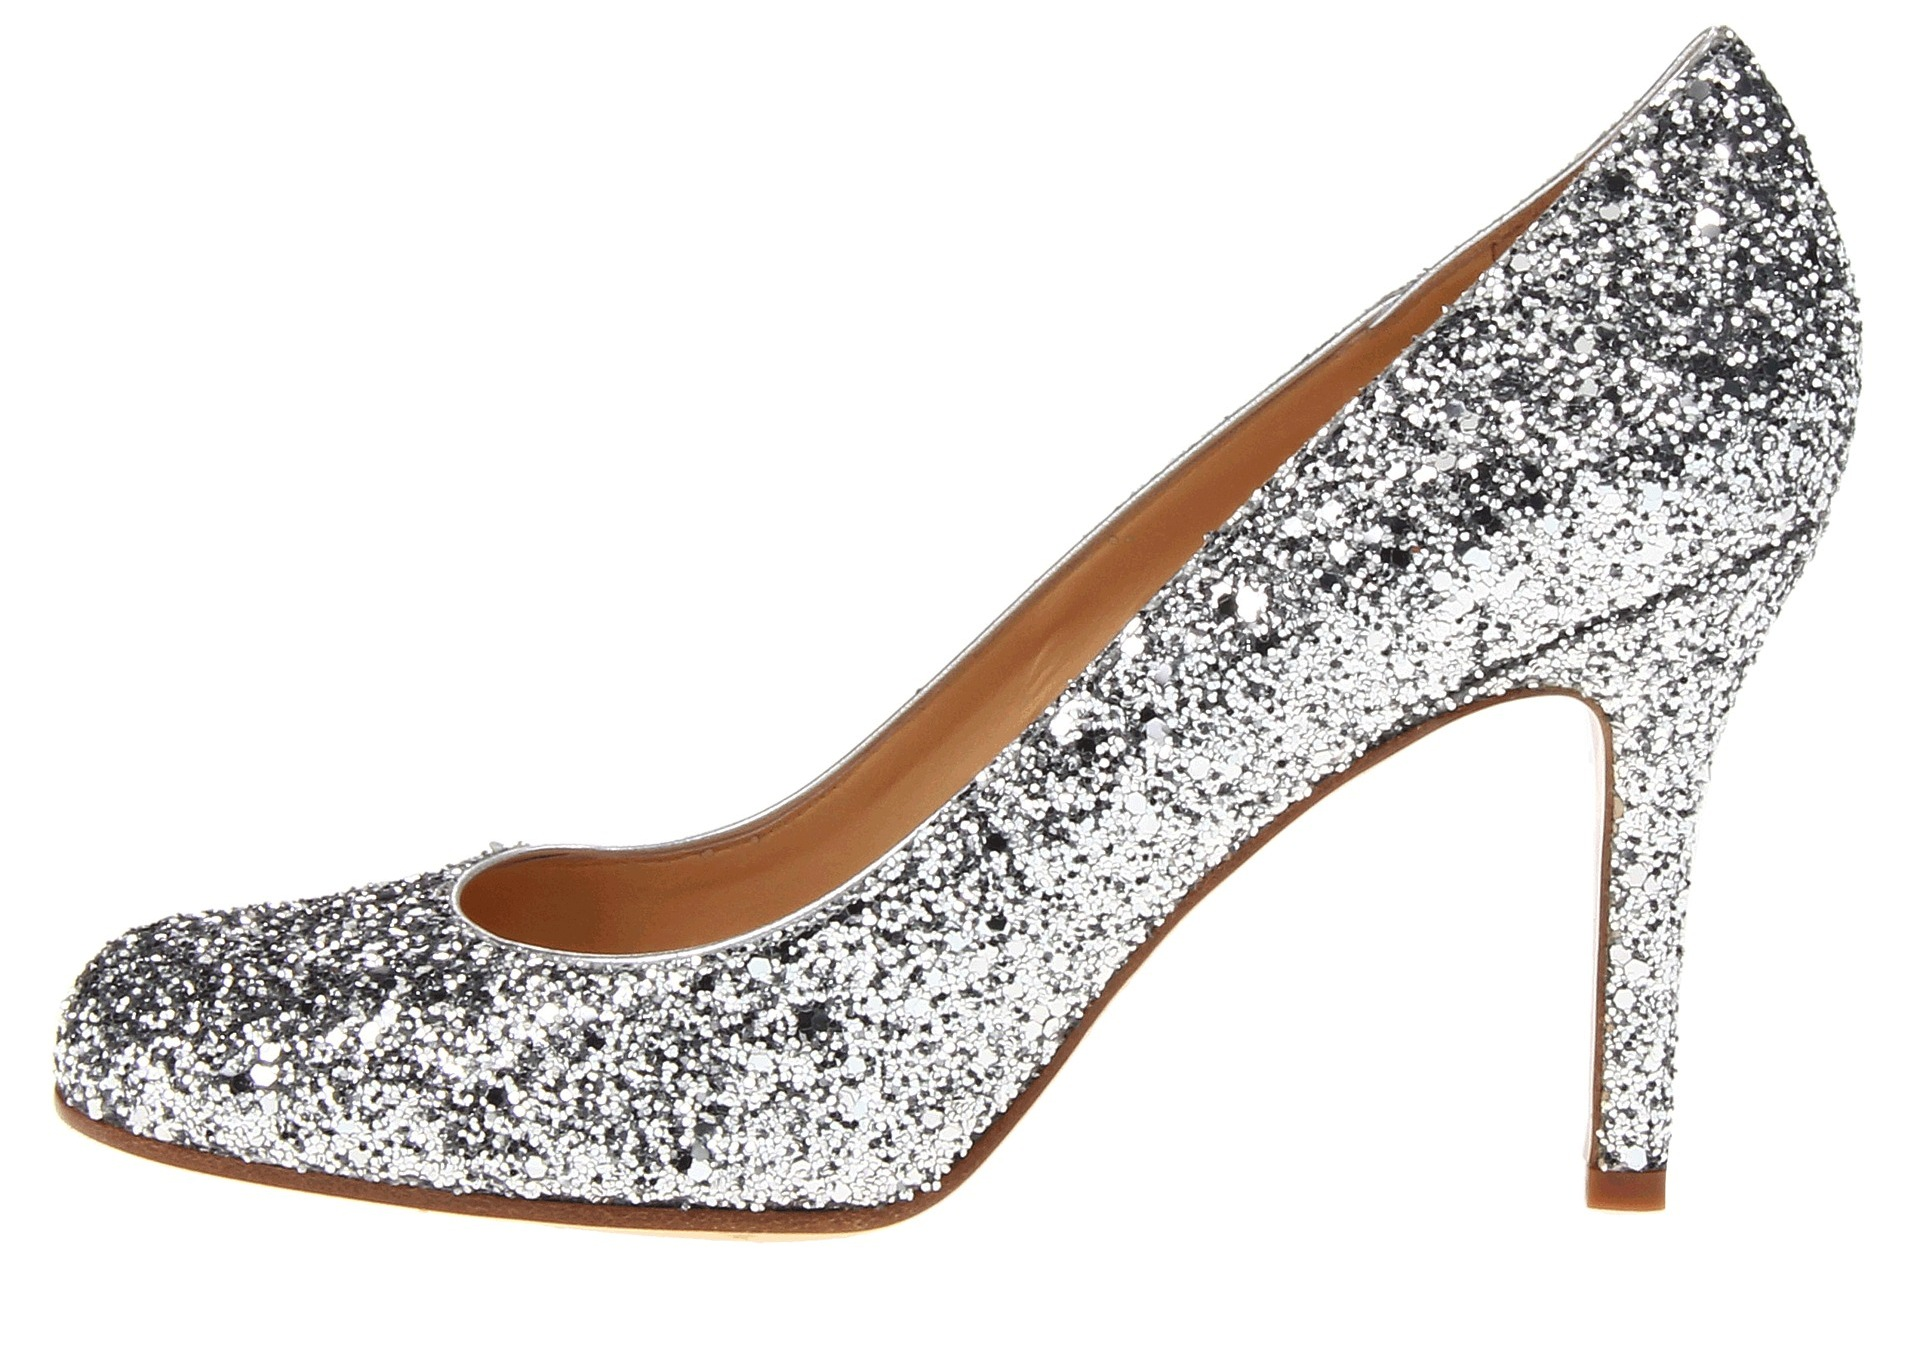 Silver Sparkly Weding Shoes 02 - Silver Sparkly Weding Shoes